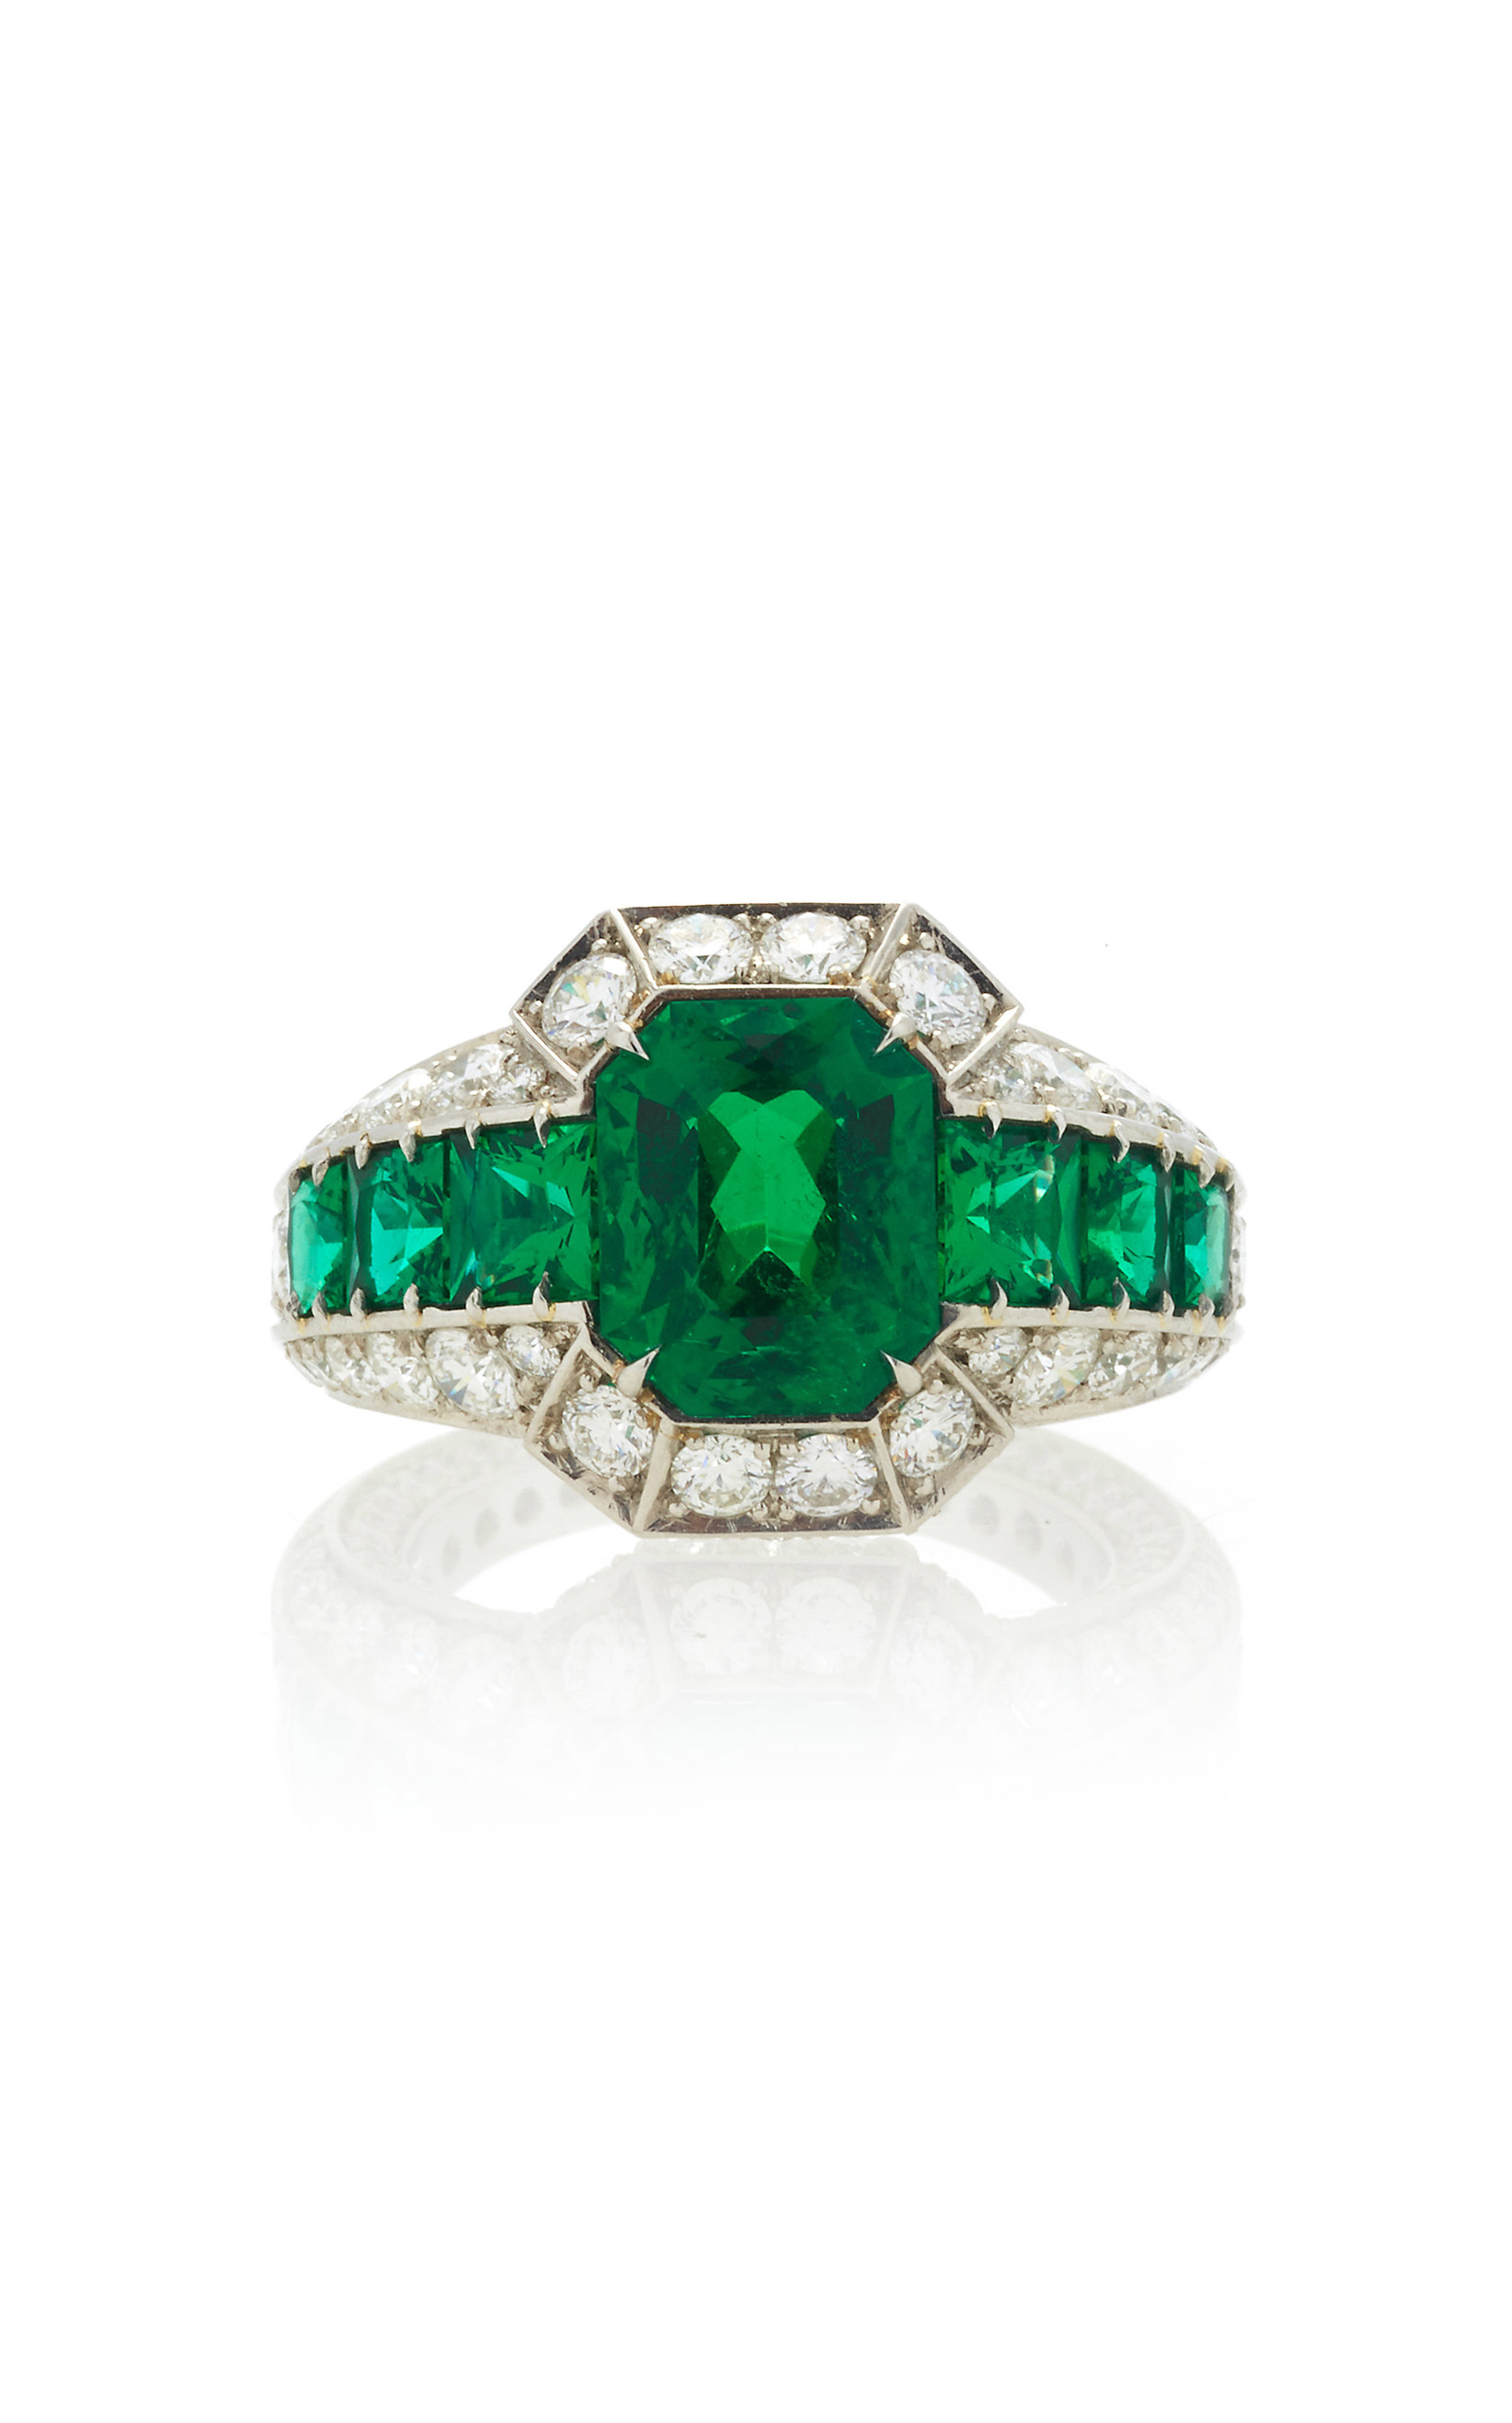 jewelry estate flynn ring boston emeral engagement shop mfj m rings custom emerald